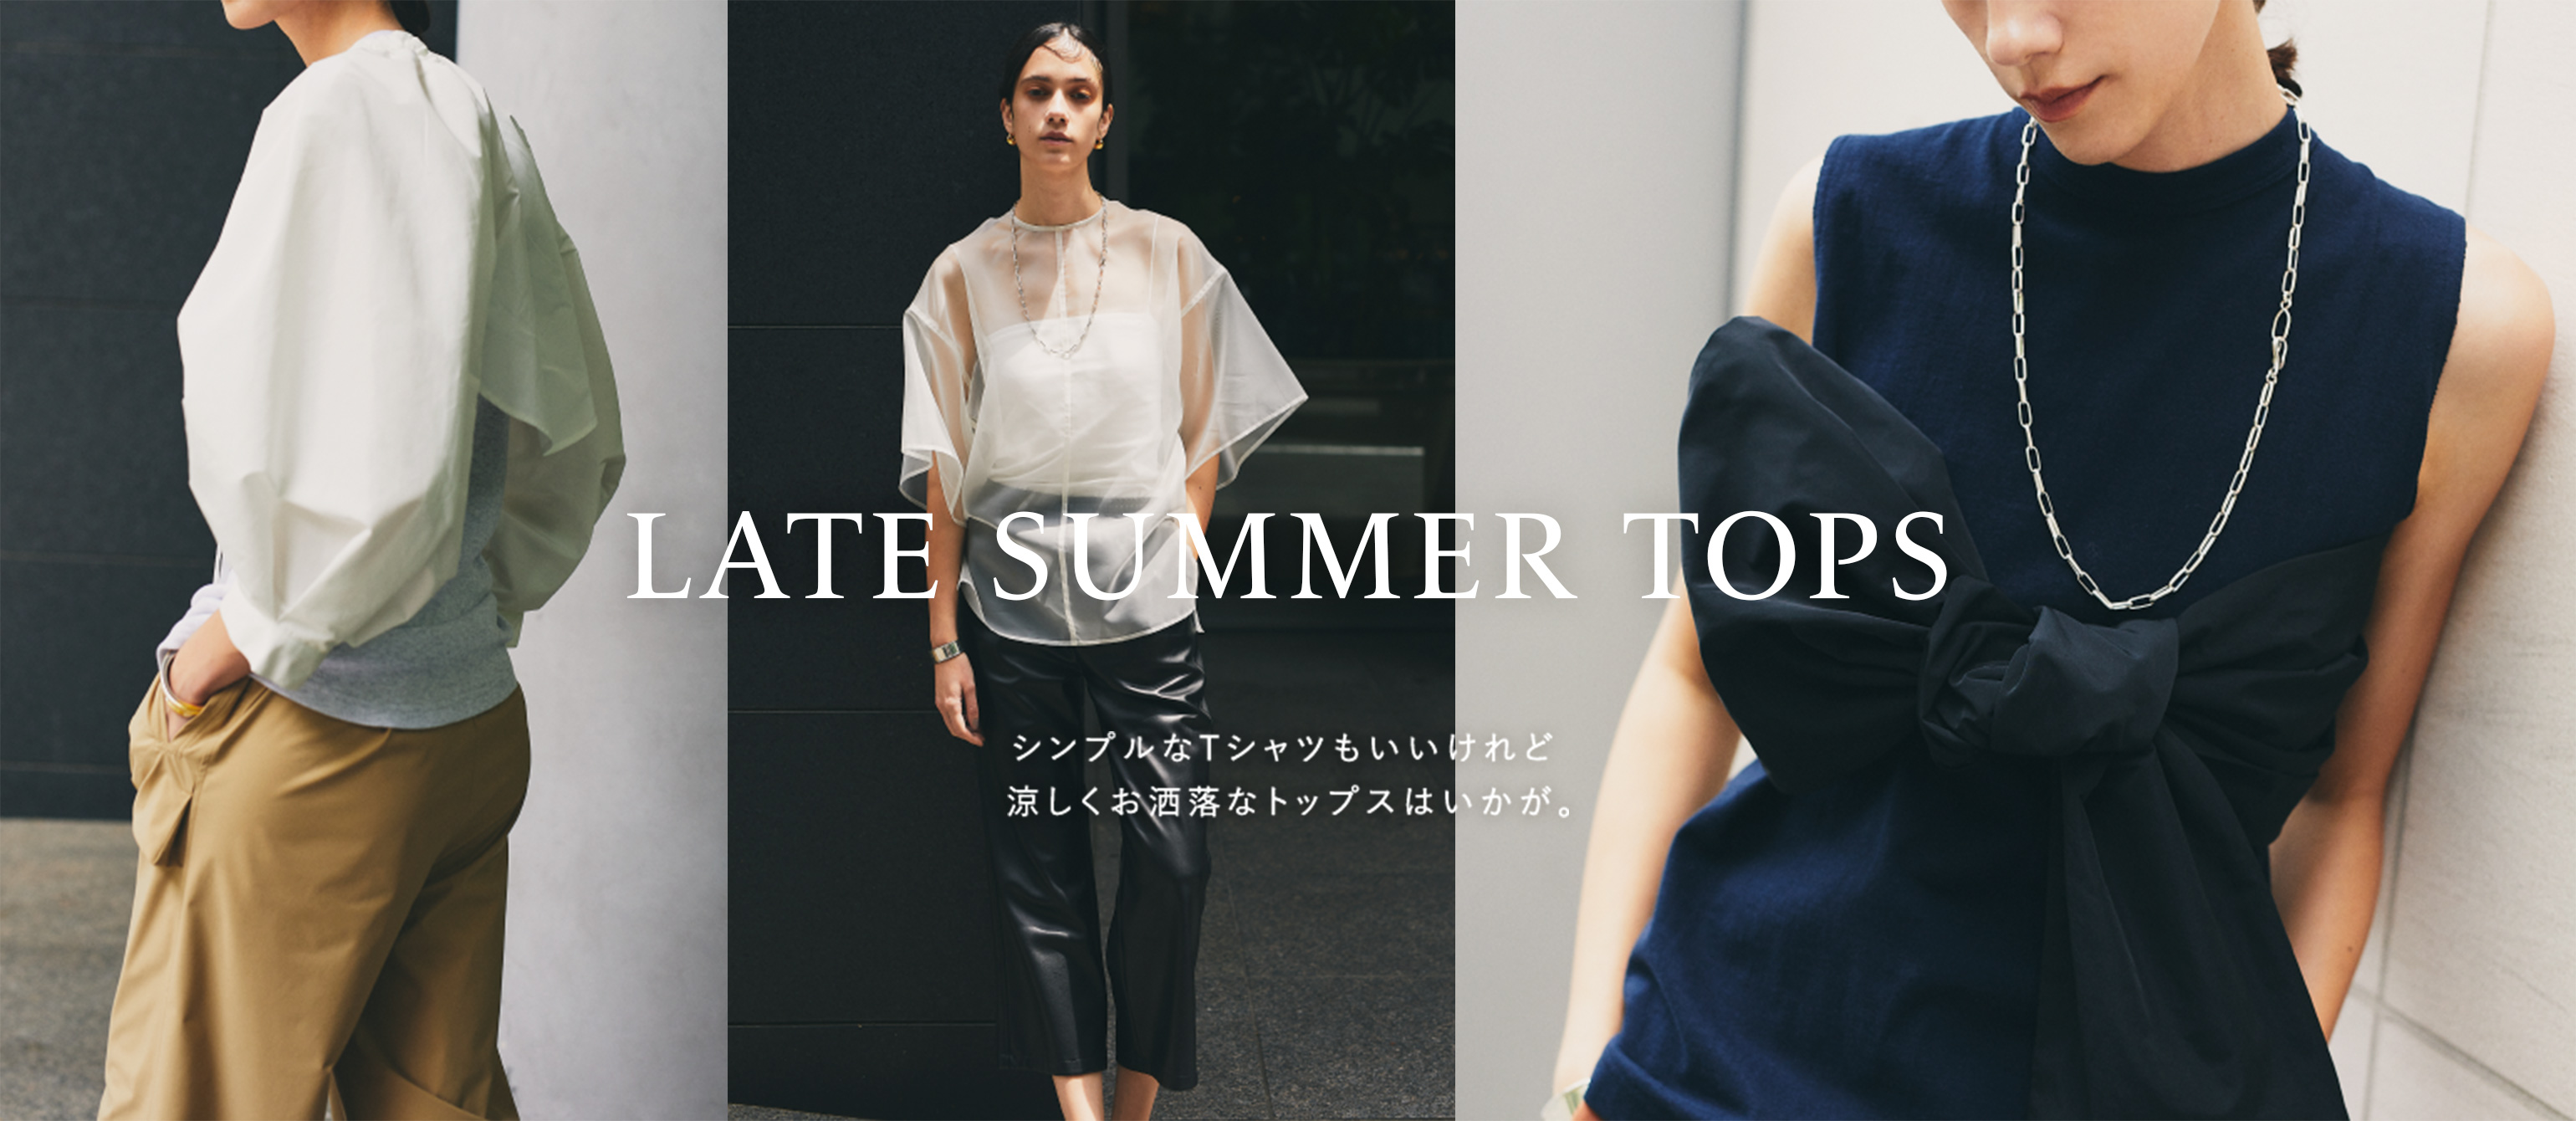 LATE SUMMER TOPS